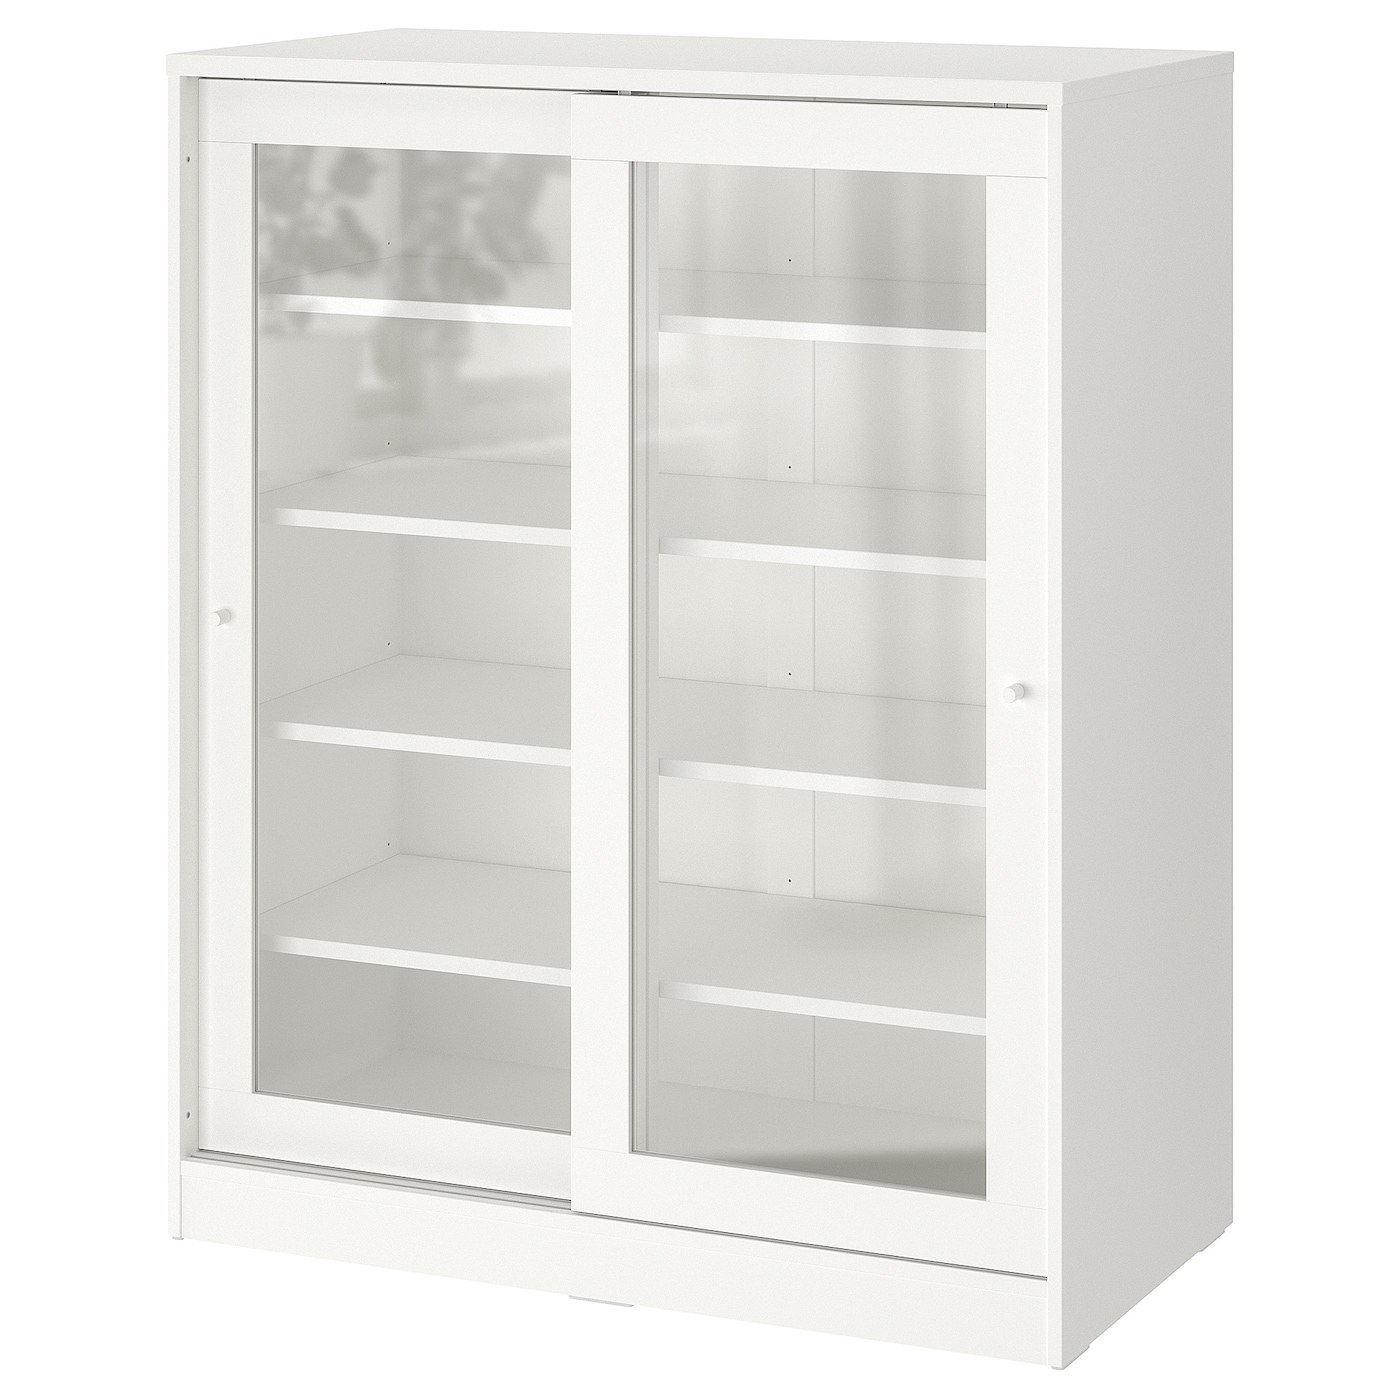 Syvde Cabinet With Glass Doors White 100x123 Cm Ikea